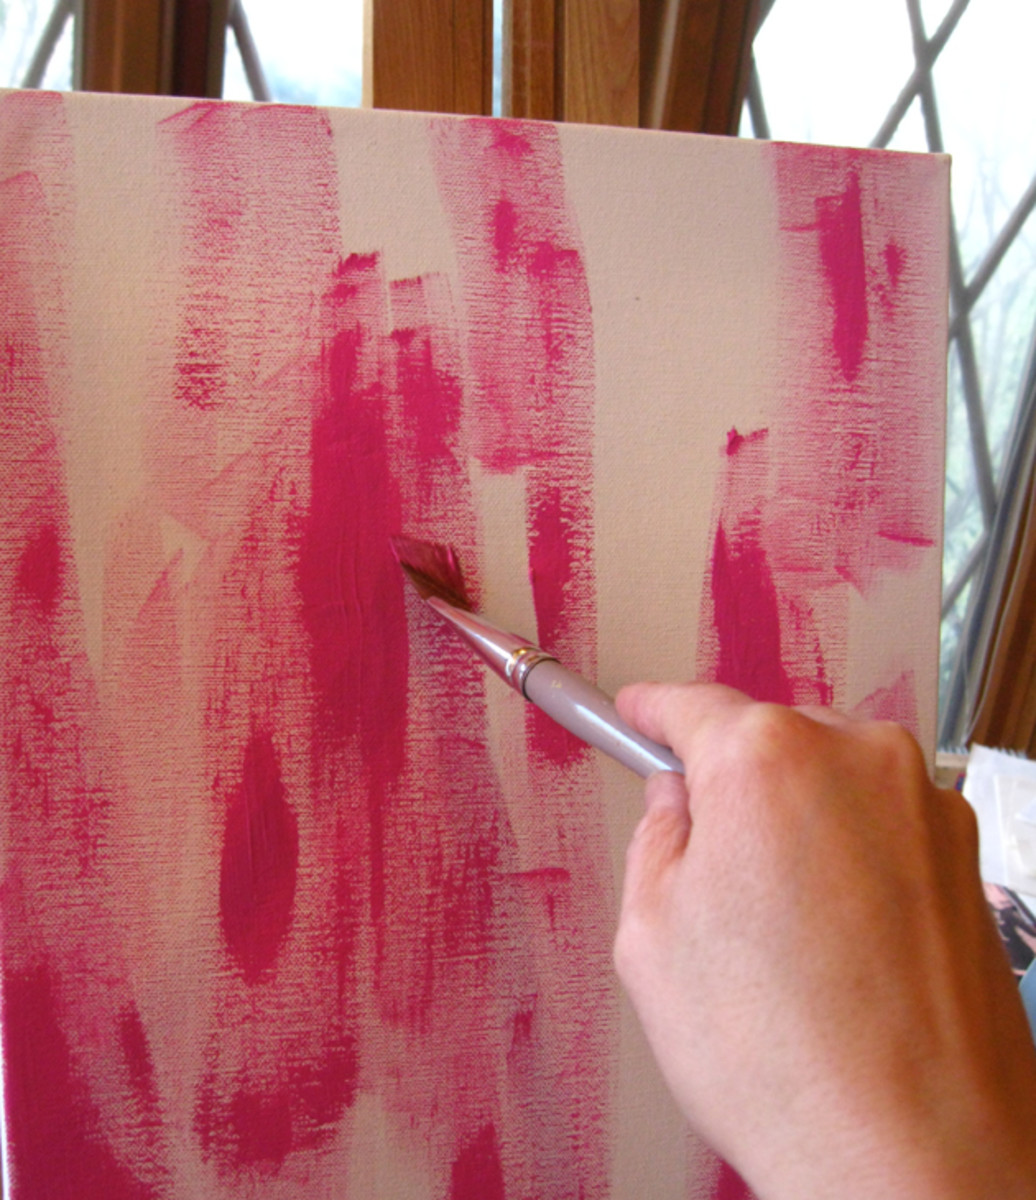 Start painting on the canvas